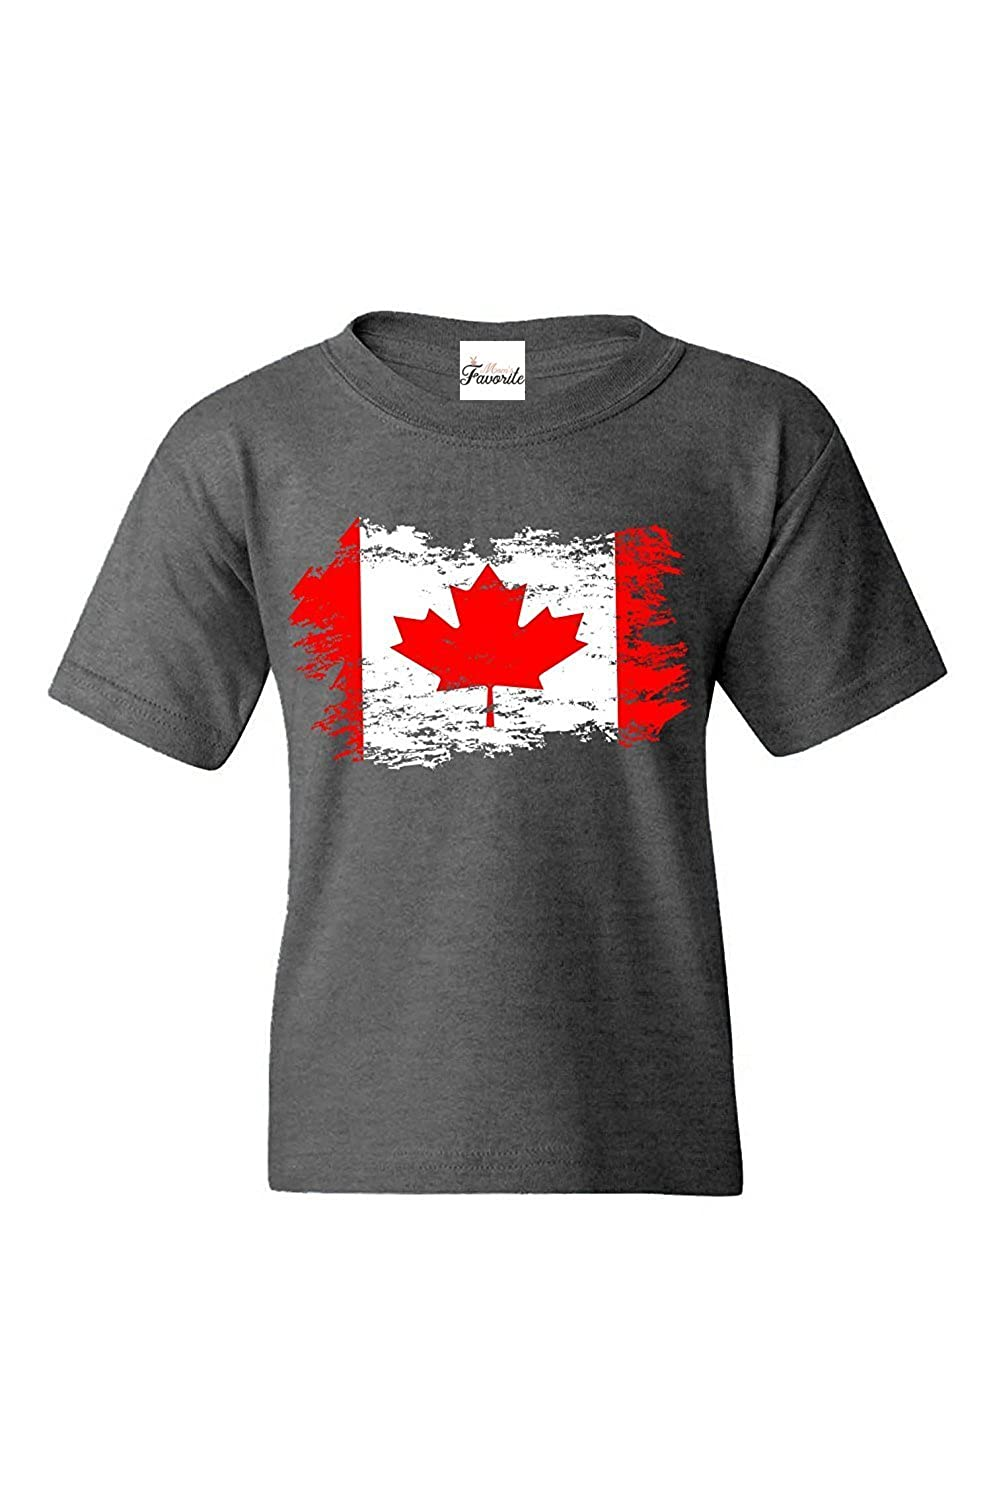 Mom's Favorite Canadian Flag Youth's T-Shirt Canada Shirts